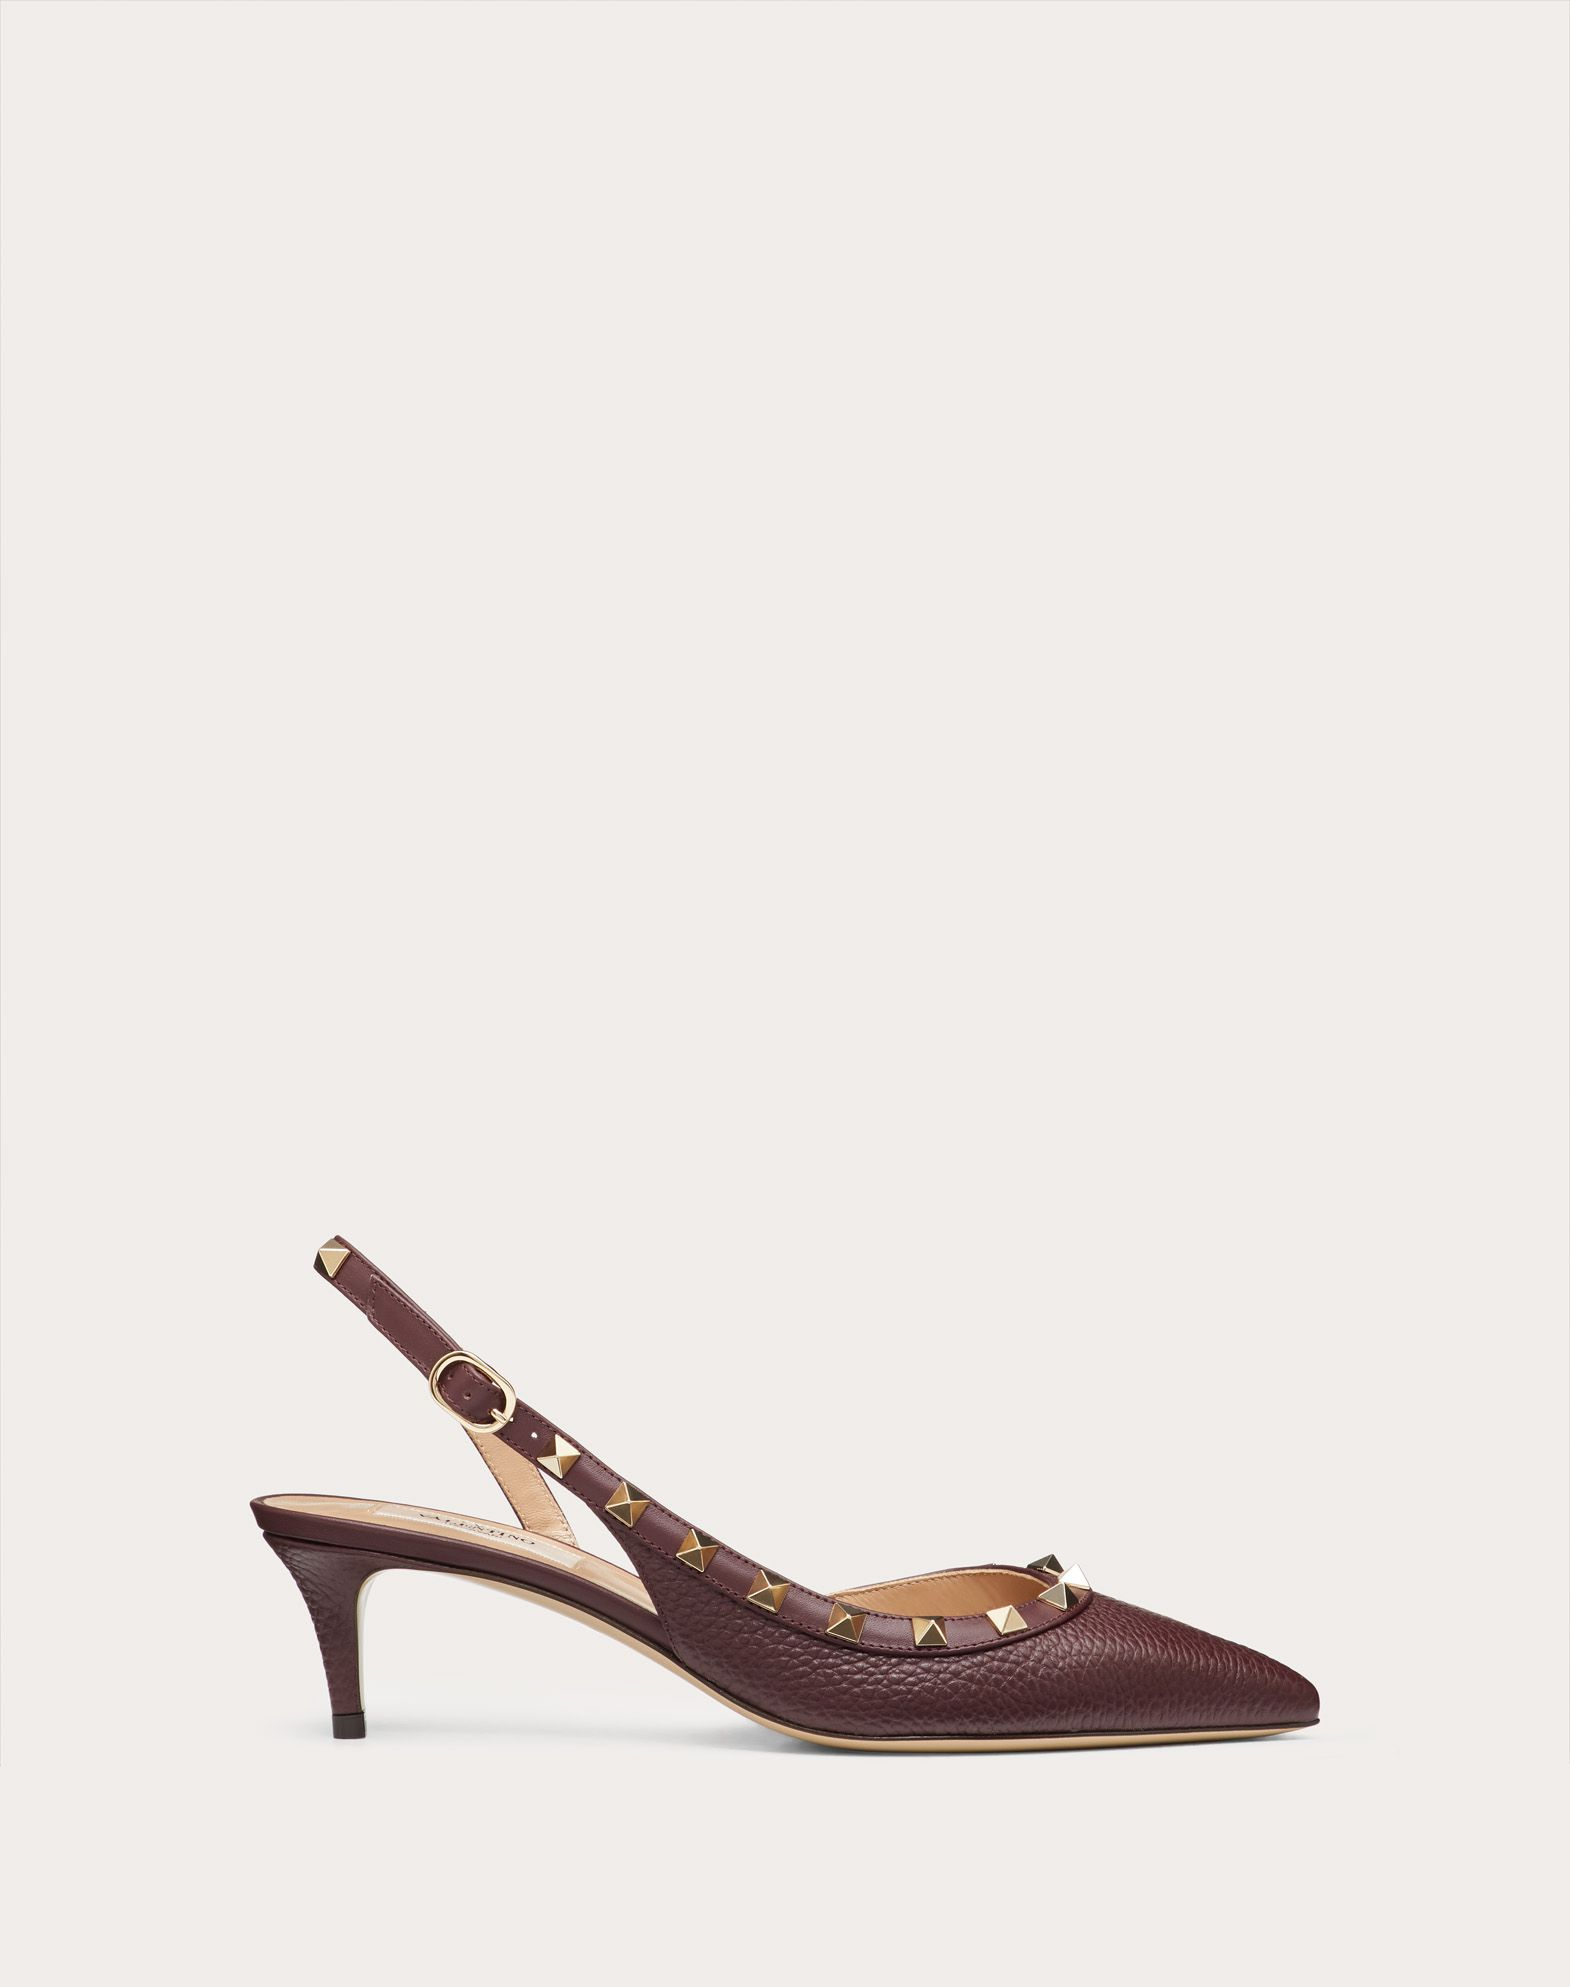 Rockstud Grainy Calfskin Leather Slingback Pump 50 mm